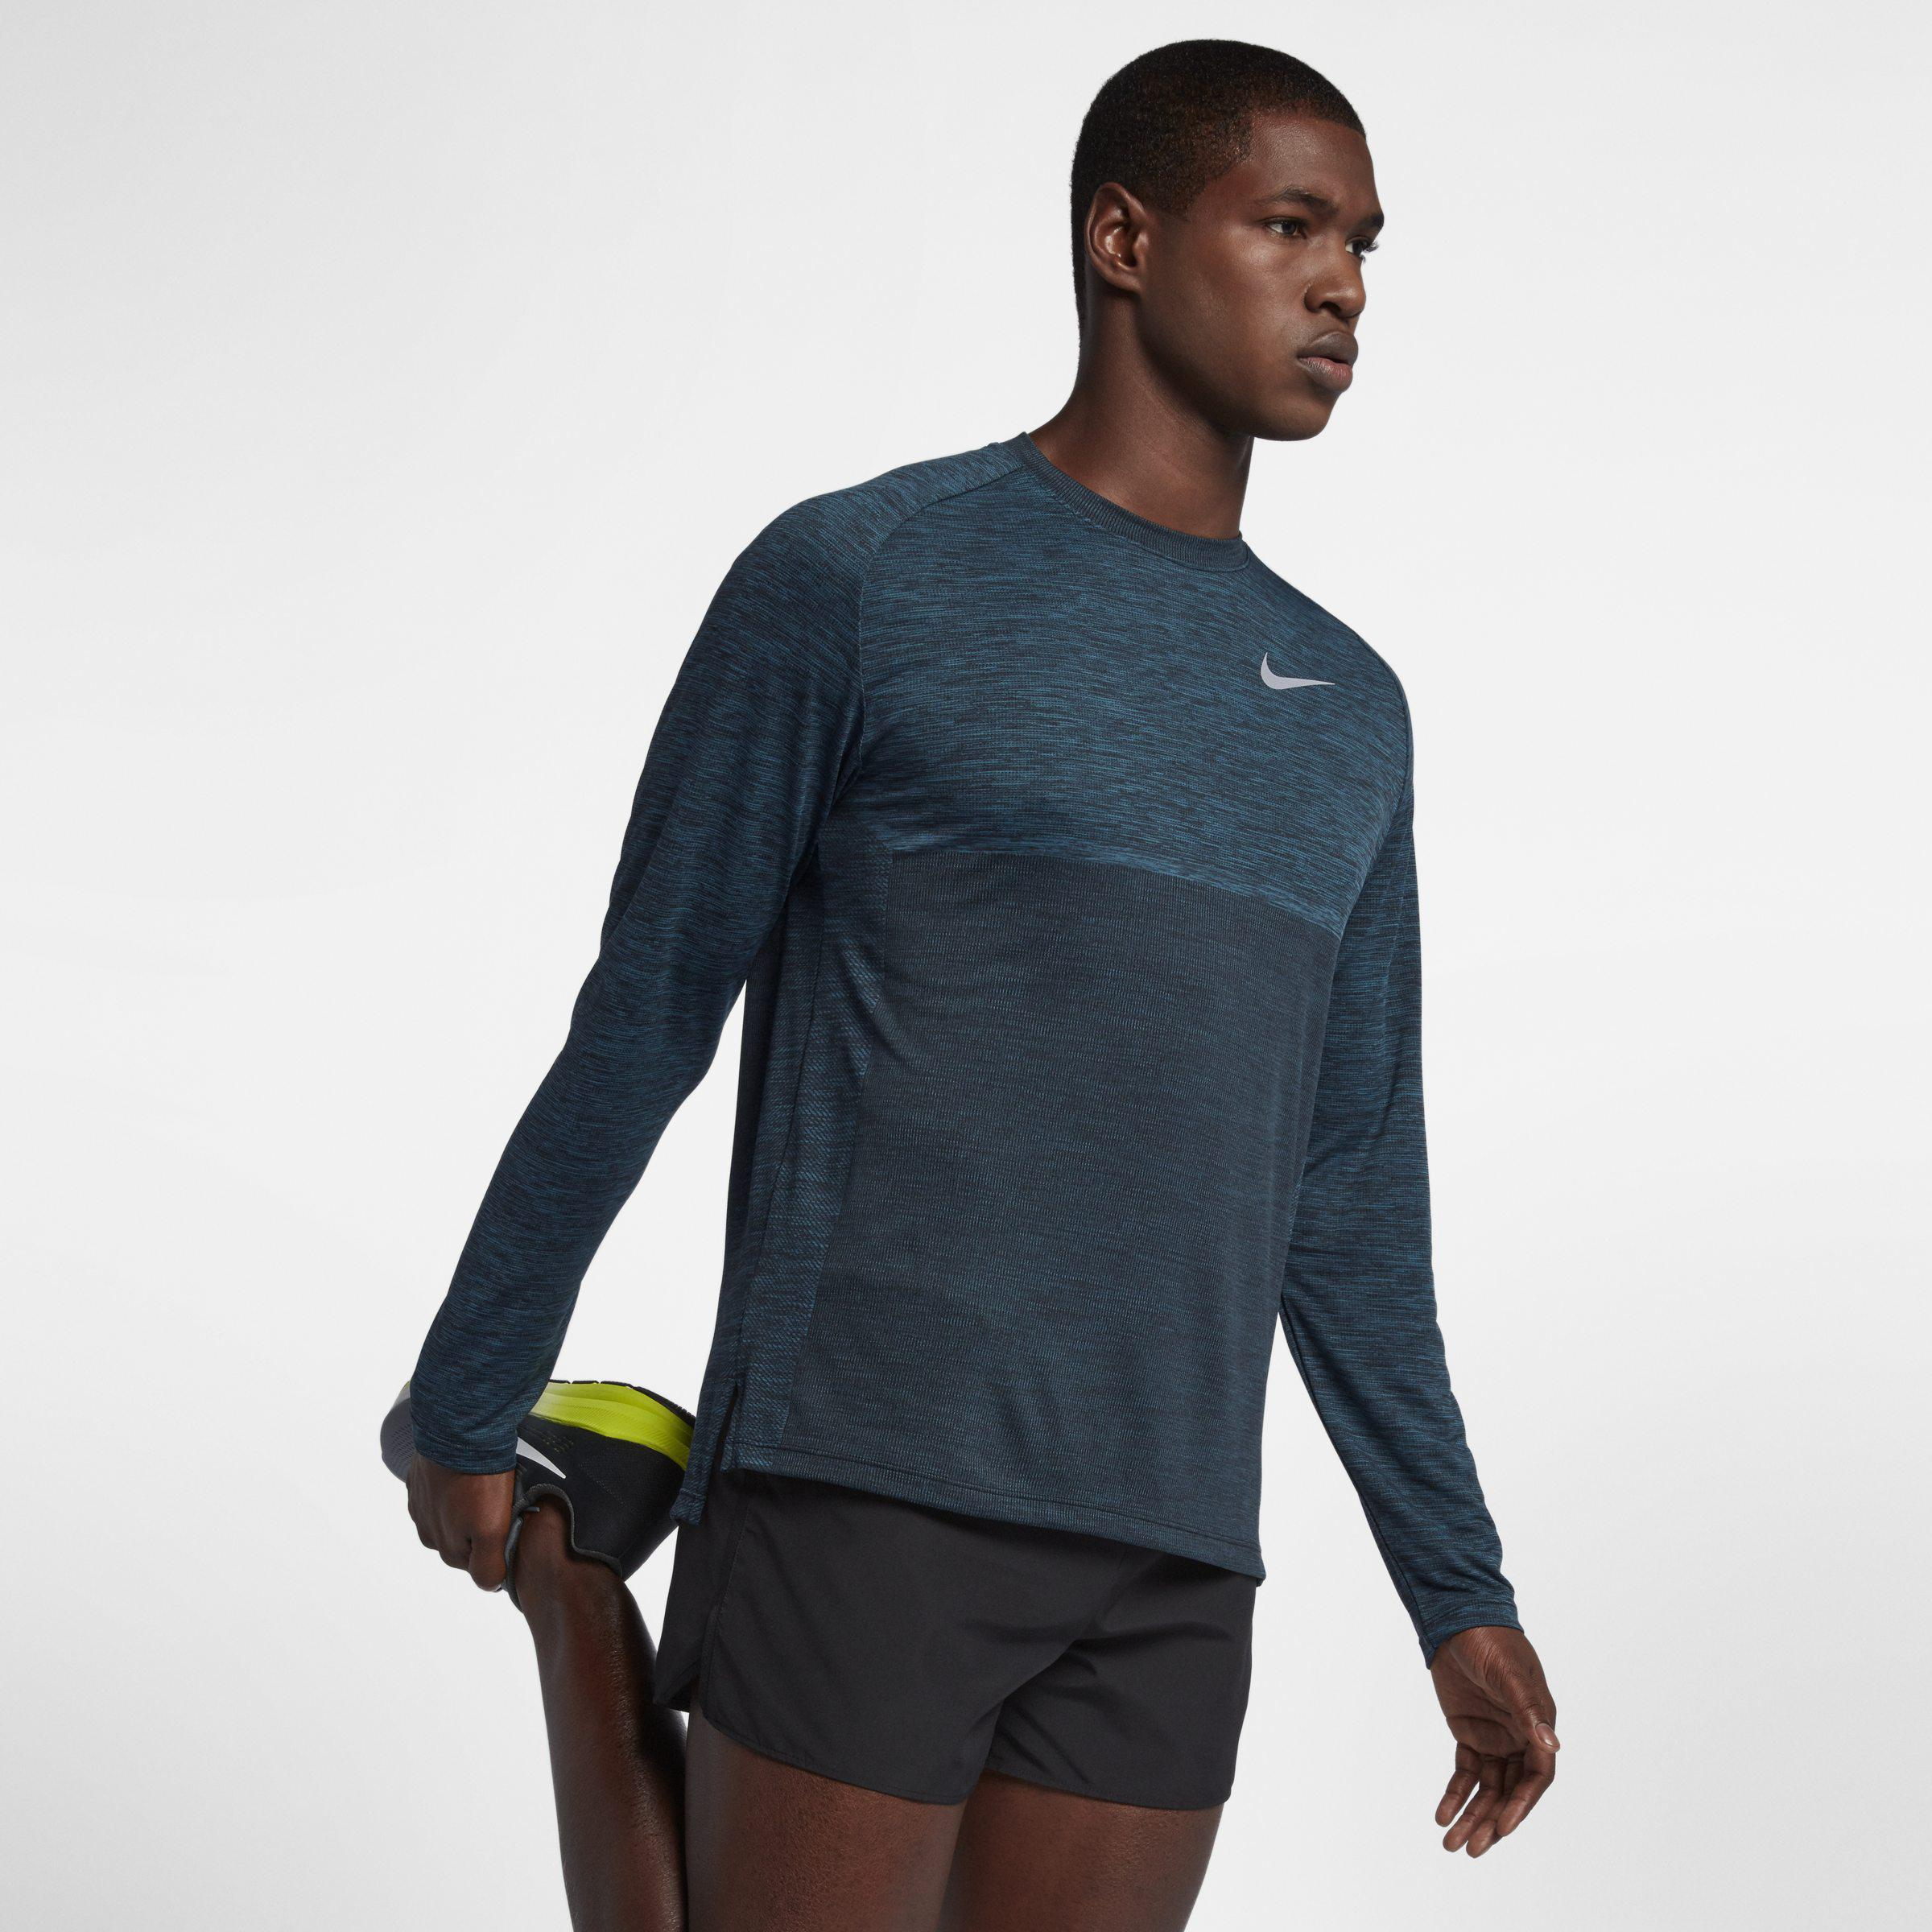 0d49fa11 Nike Dri-fit Medalist Long-sleeve Running Top in Blue for Men - Lyst